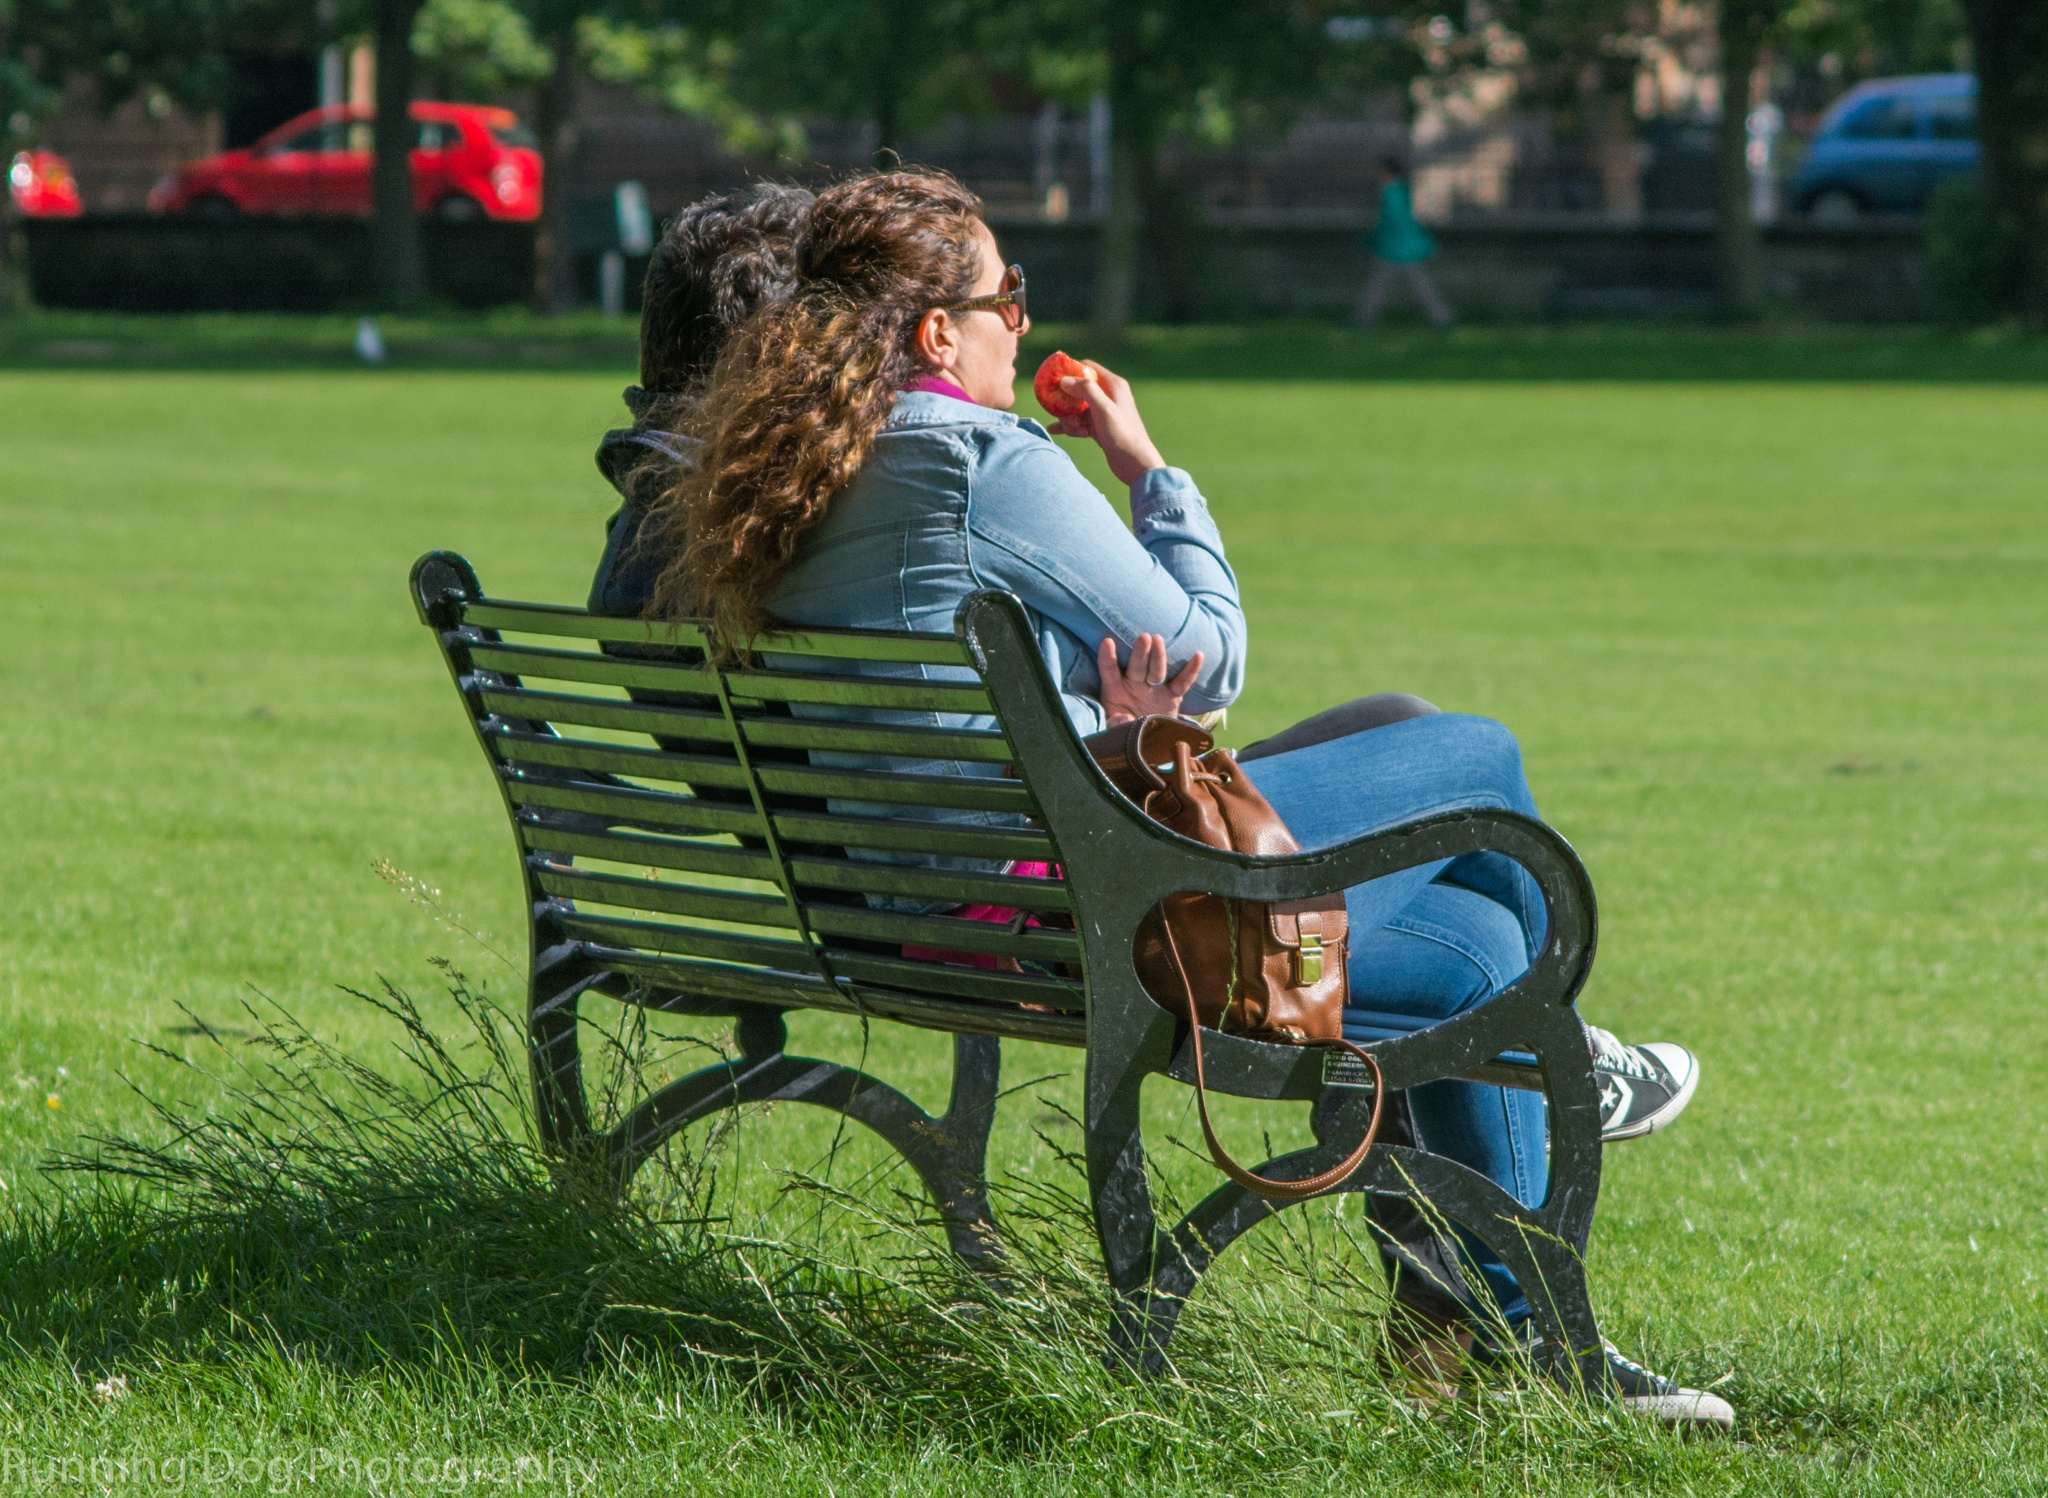 Snack in the park by Simon Evans